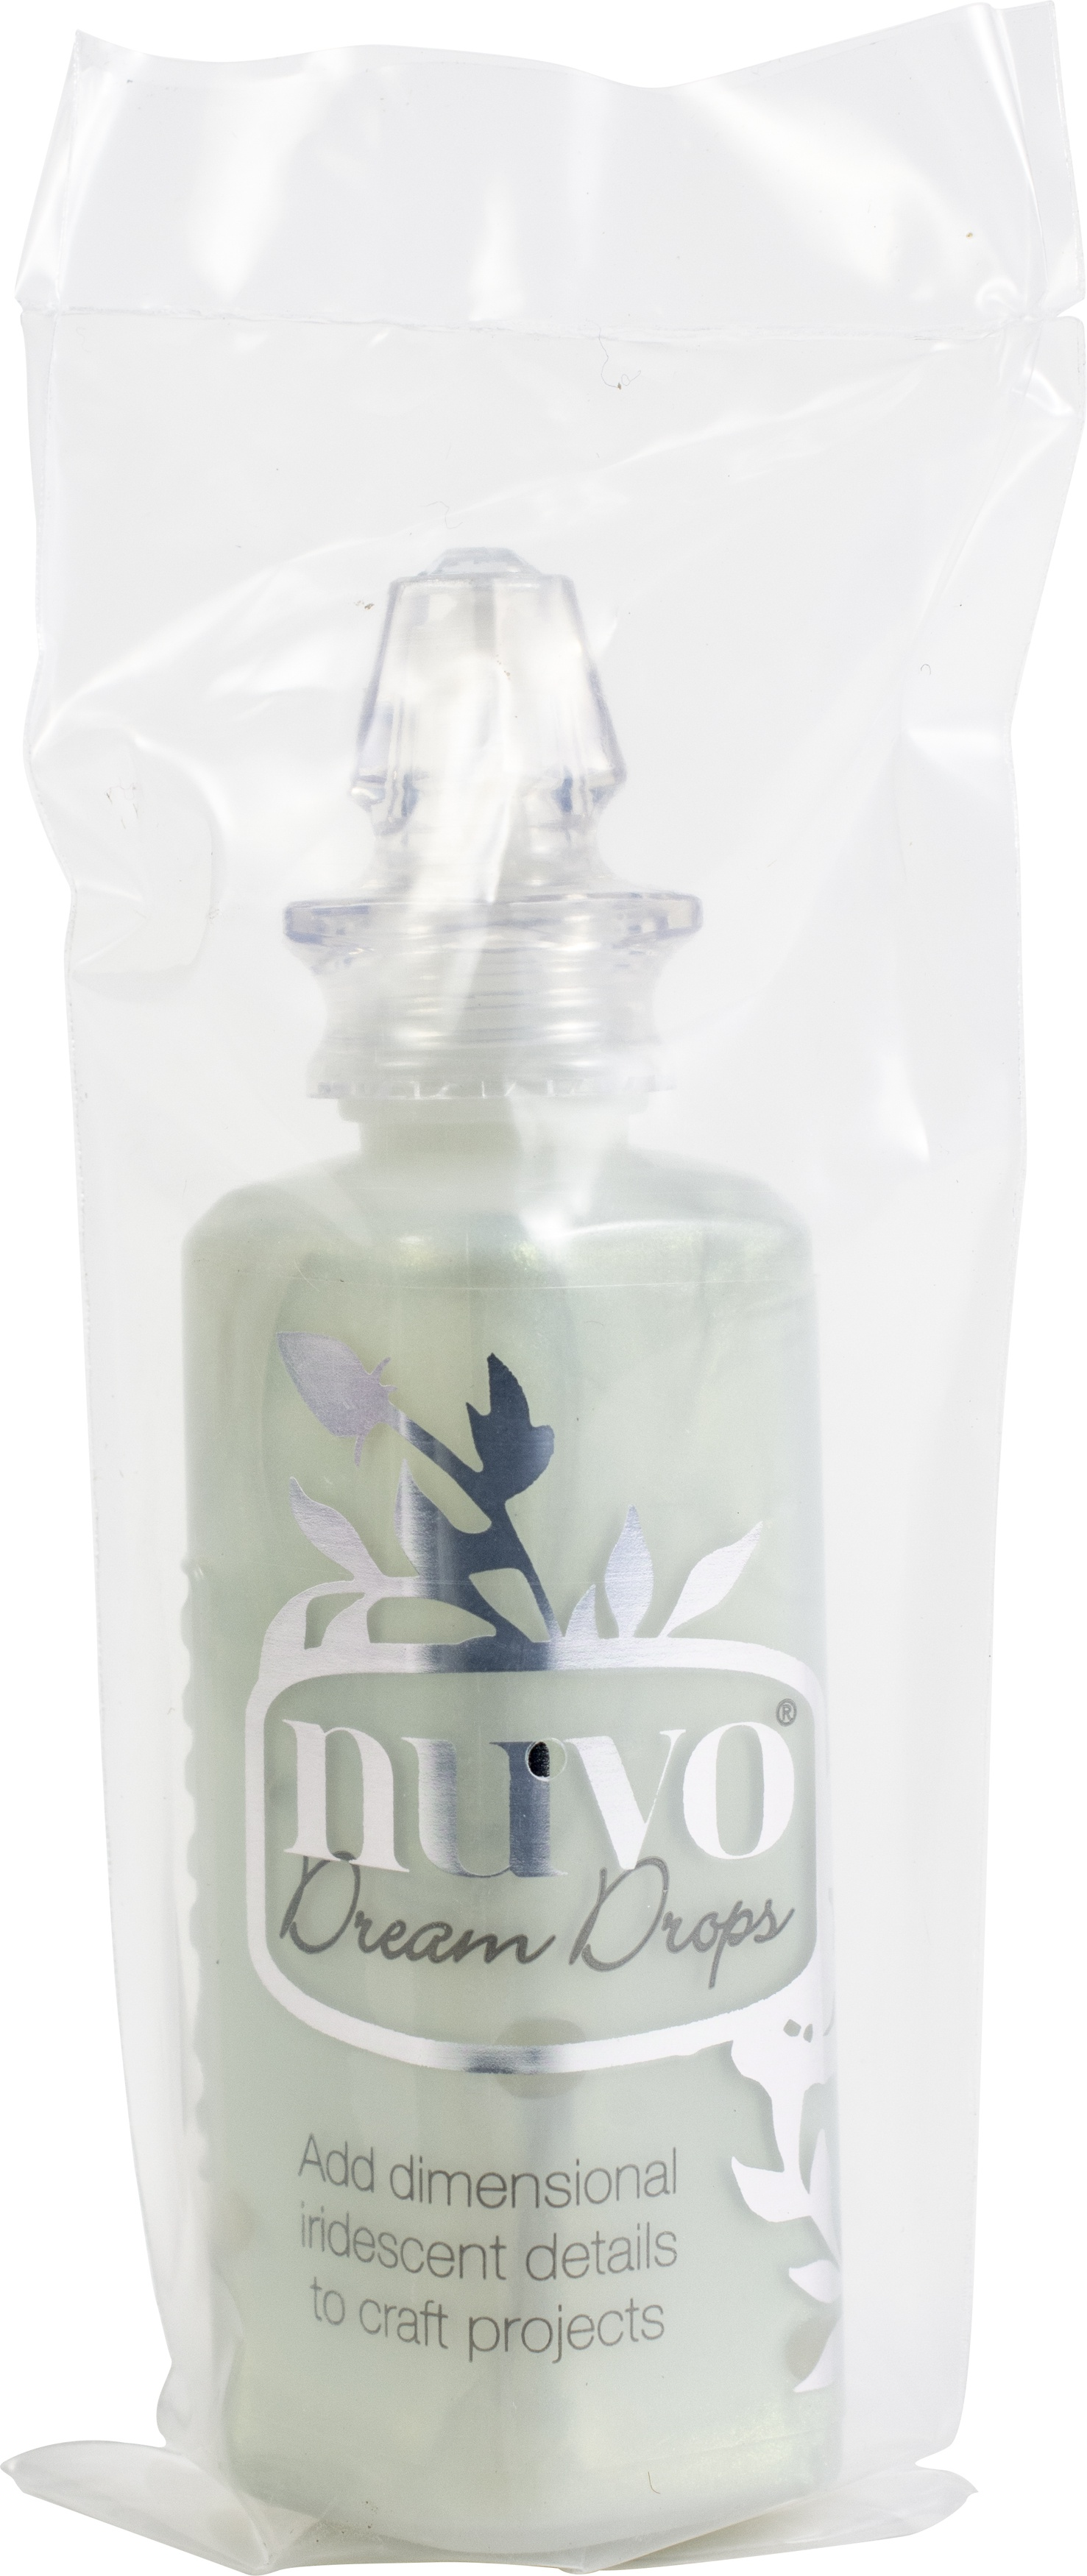 Nuvo Dream Drops 1.3oz-Cloud